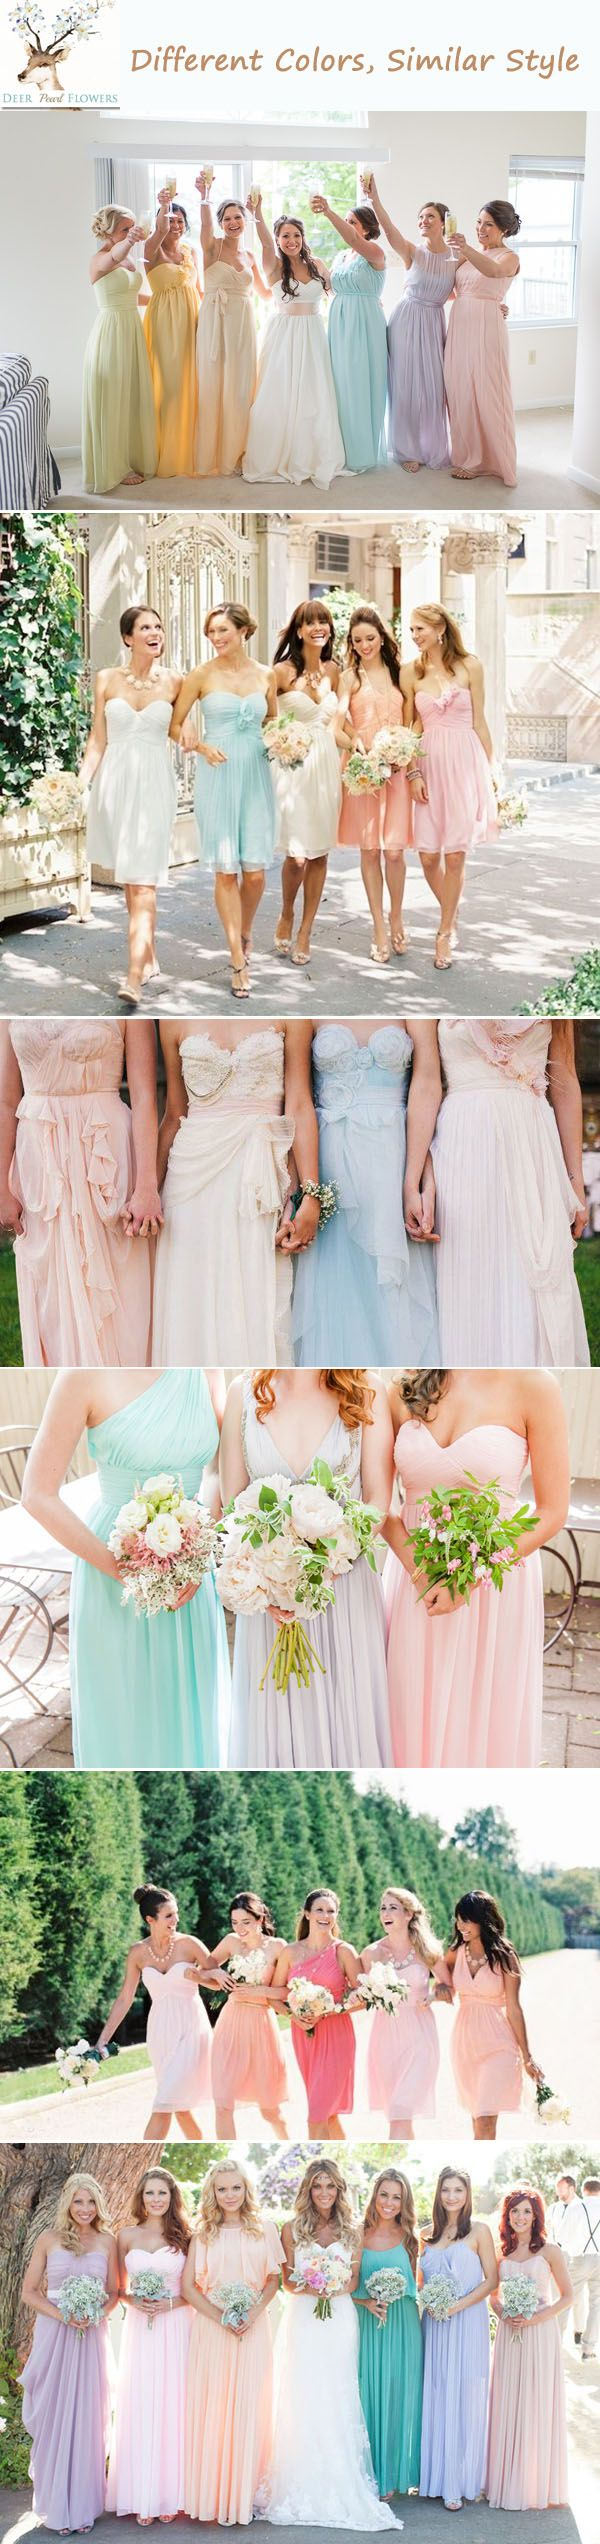 mismatch bridesmaids dresses different color similar style